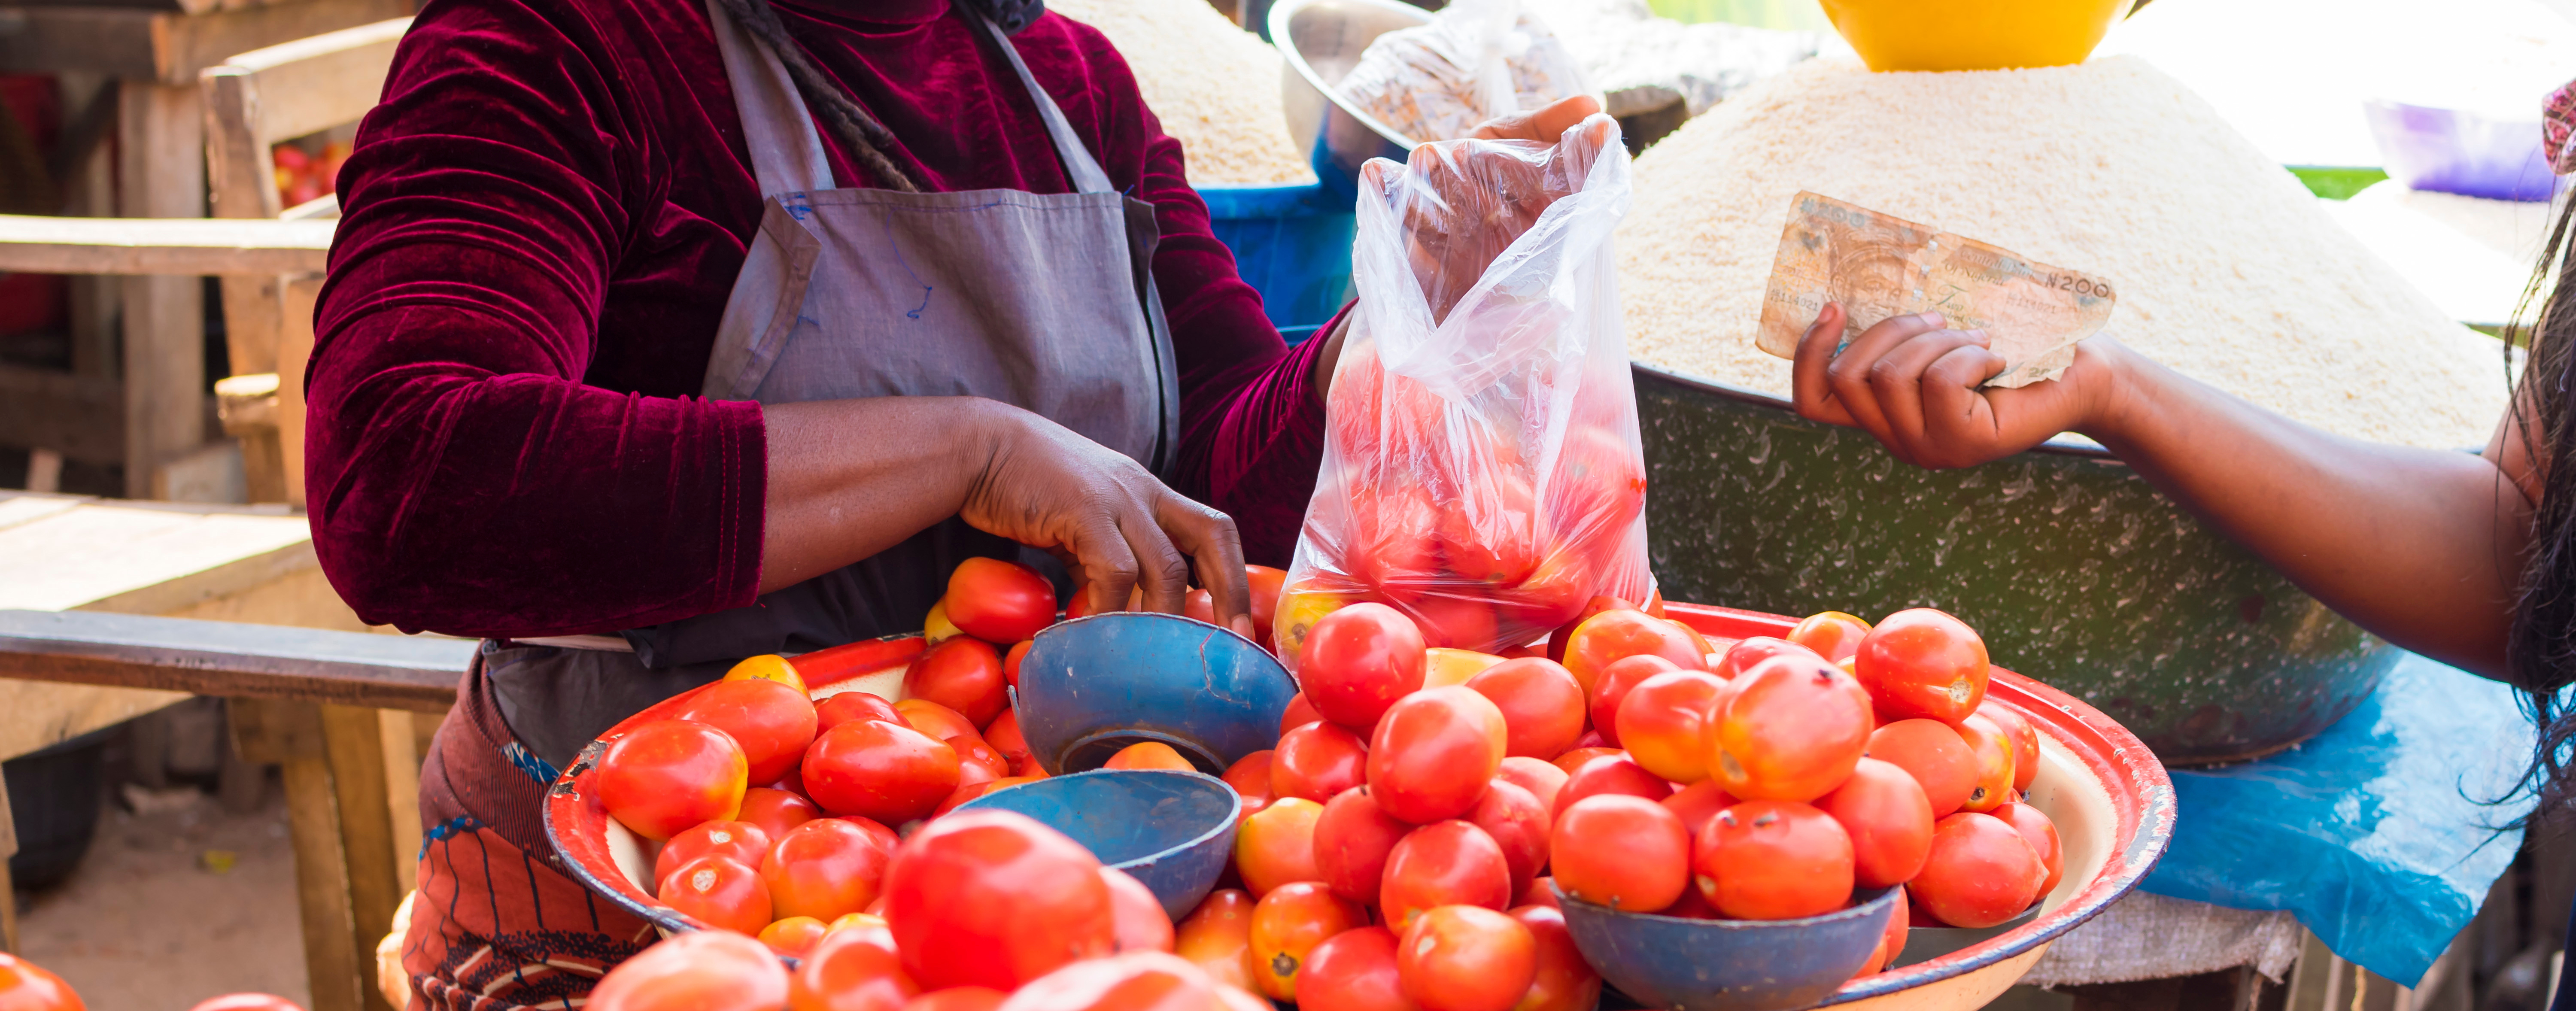 Woman at market buying tomatoes with cash